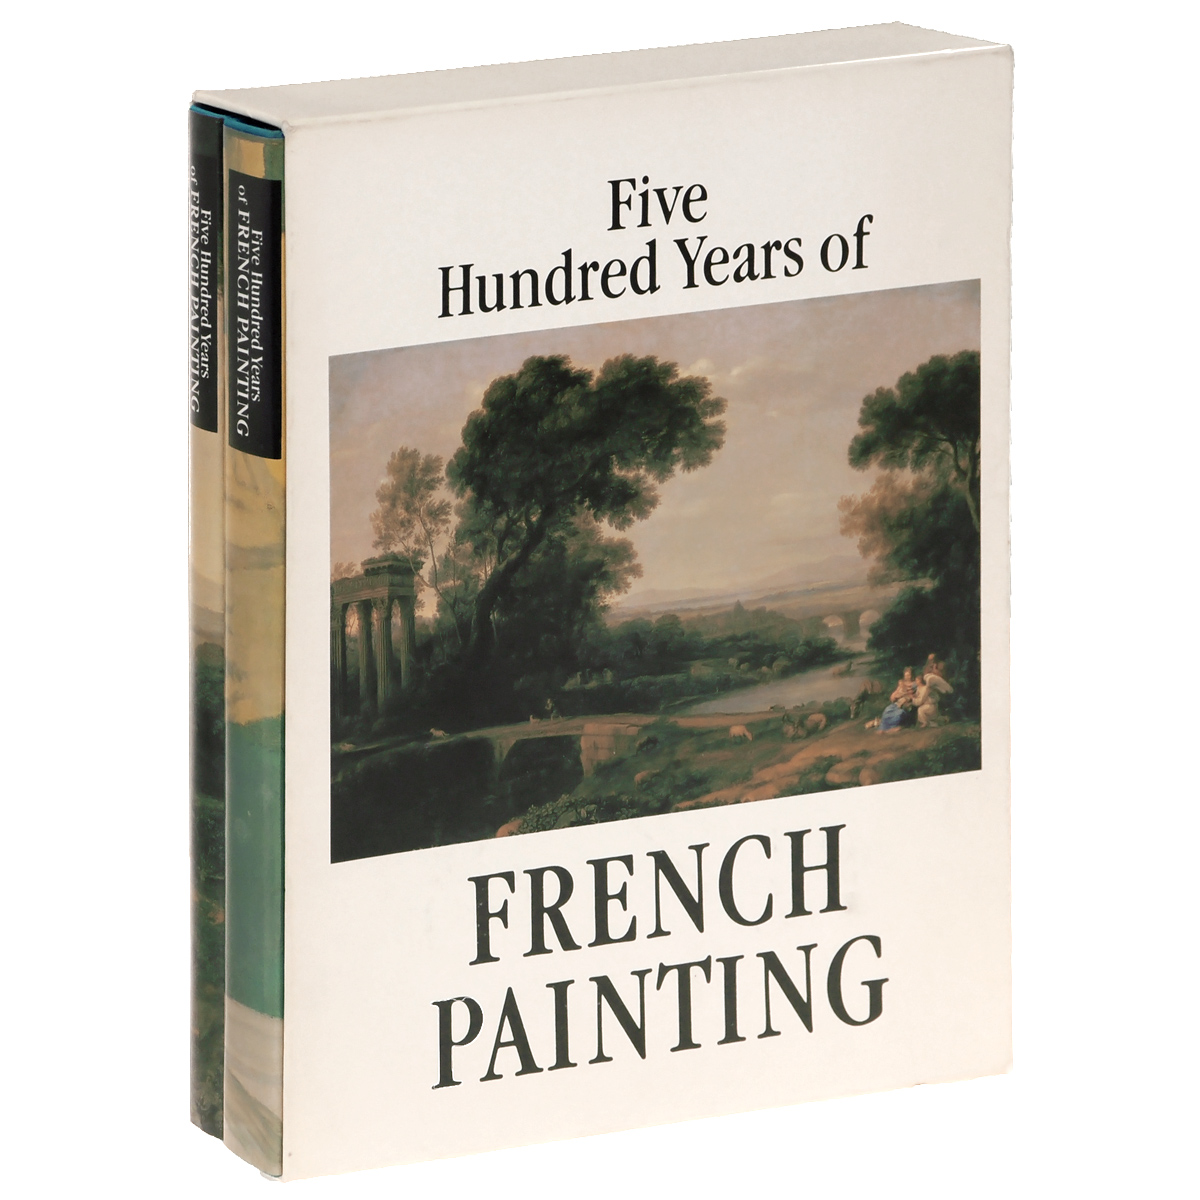 Five Hundred Years of French Painting (Альбом в 2 томах)